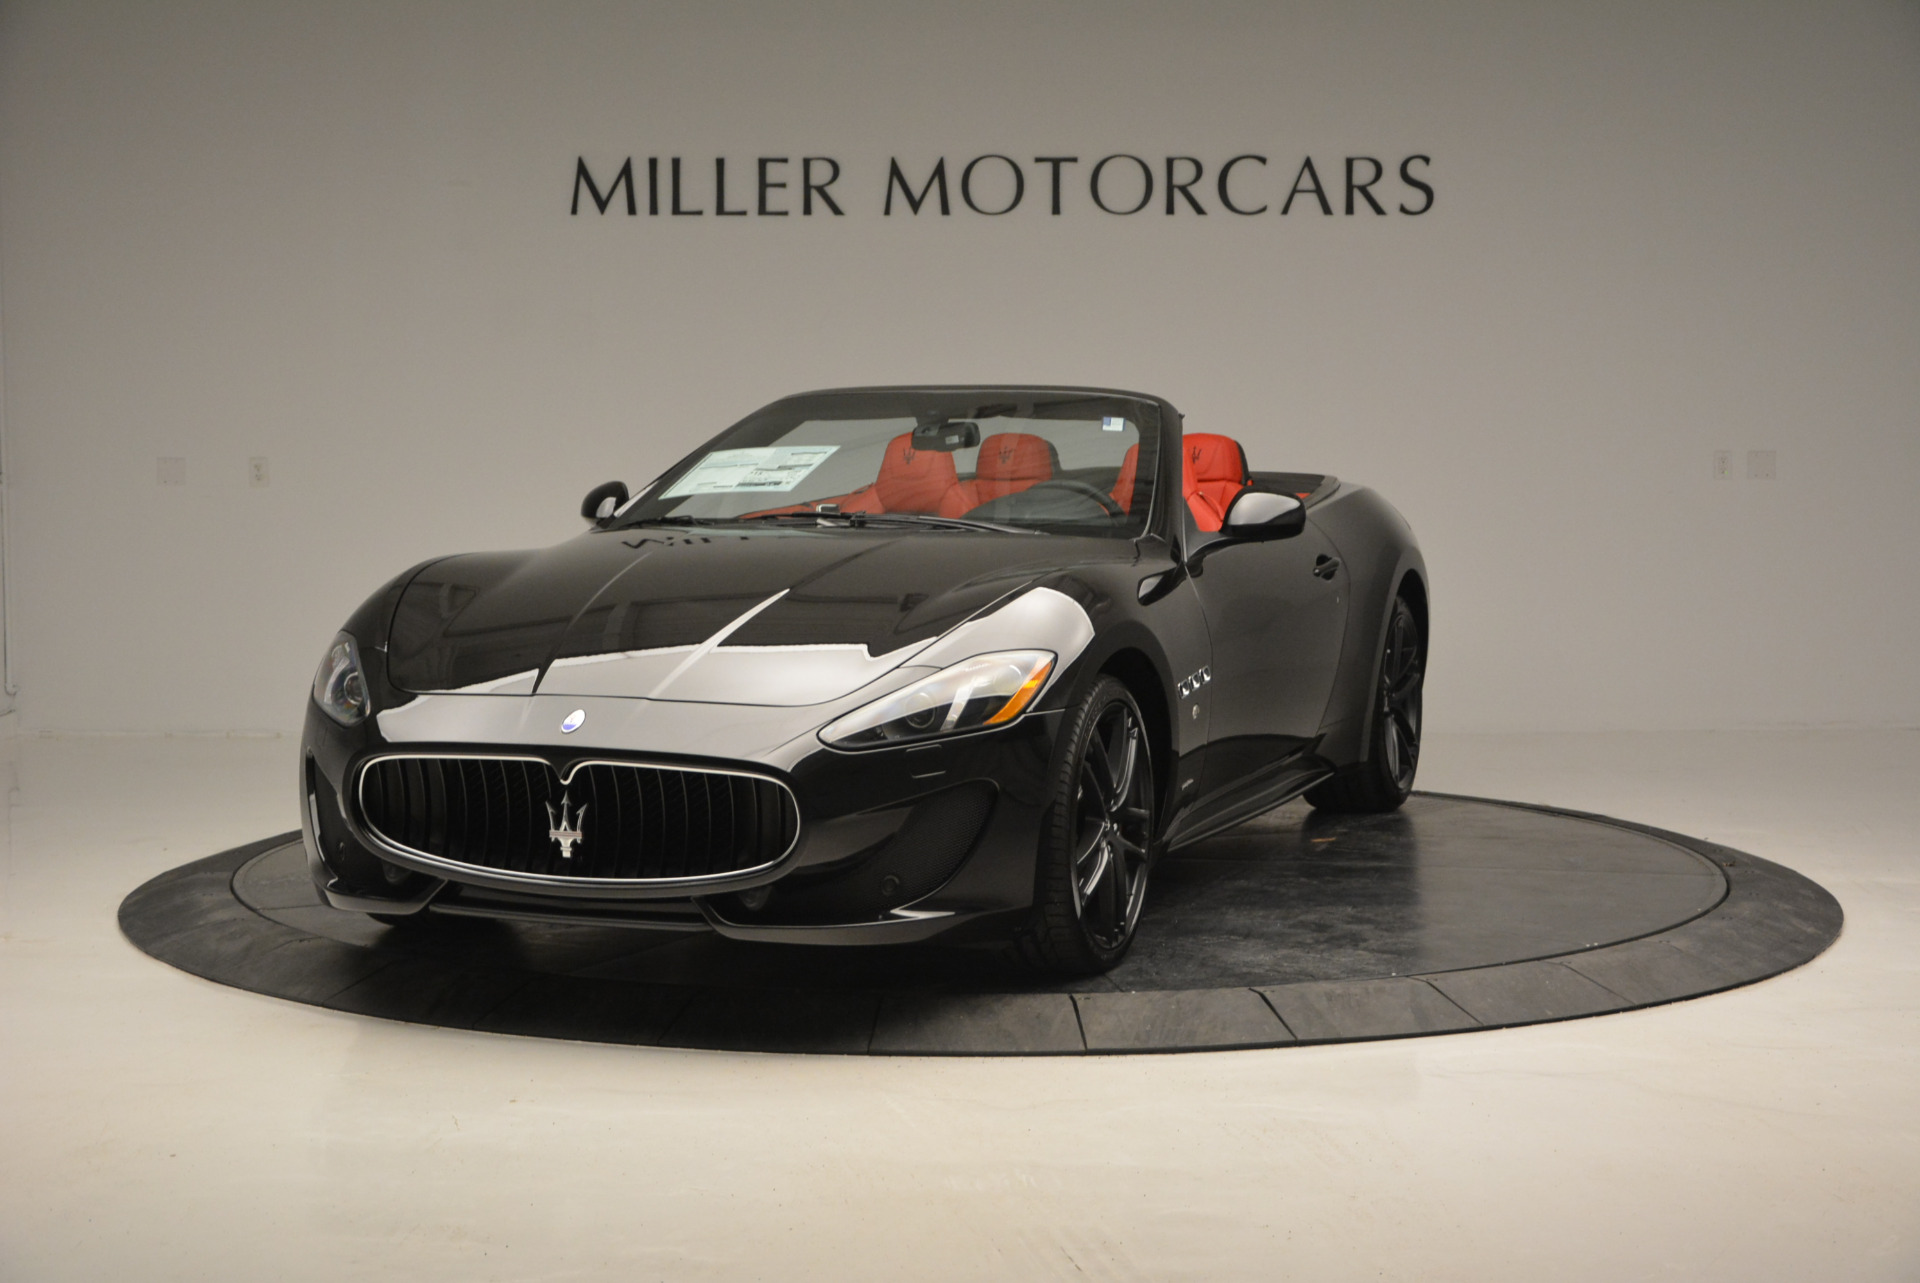 New 2017 Maserati GranTurismo Cab Sport For Sale In Westport, CT 687_main